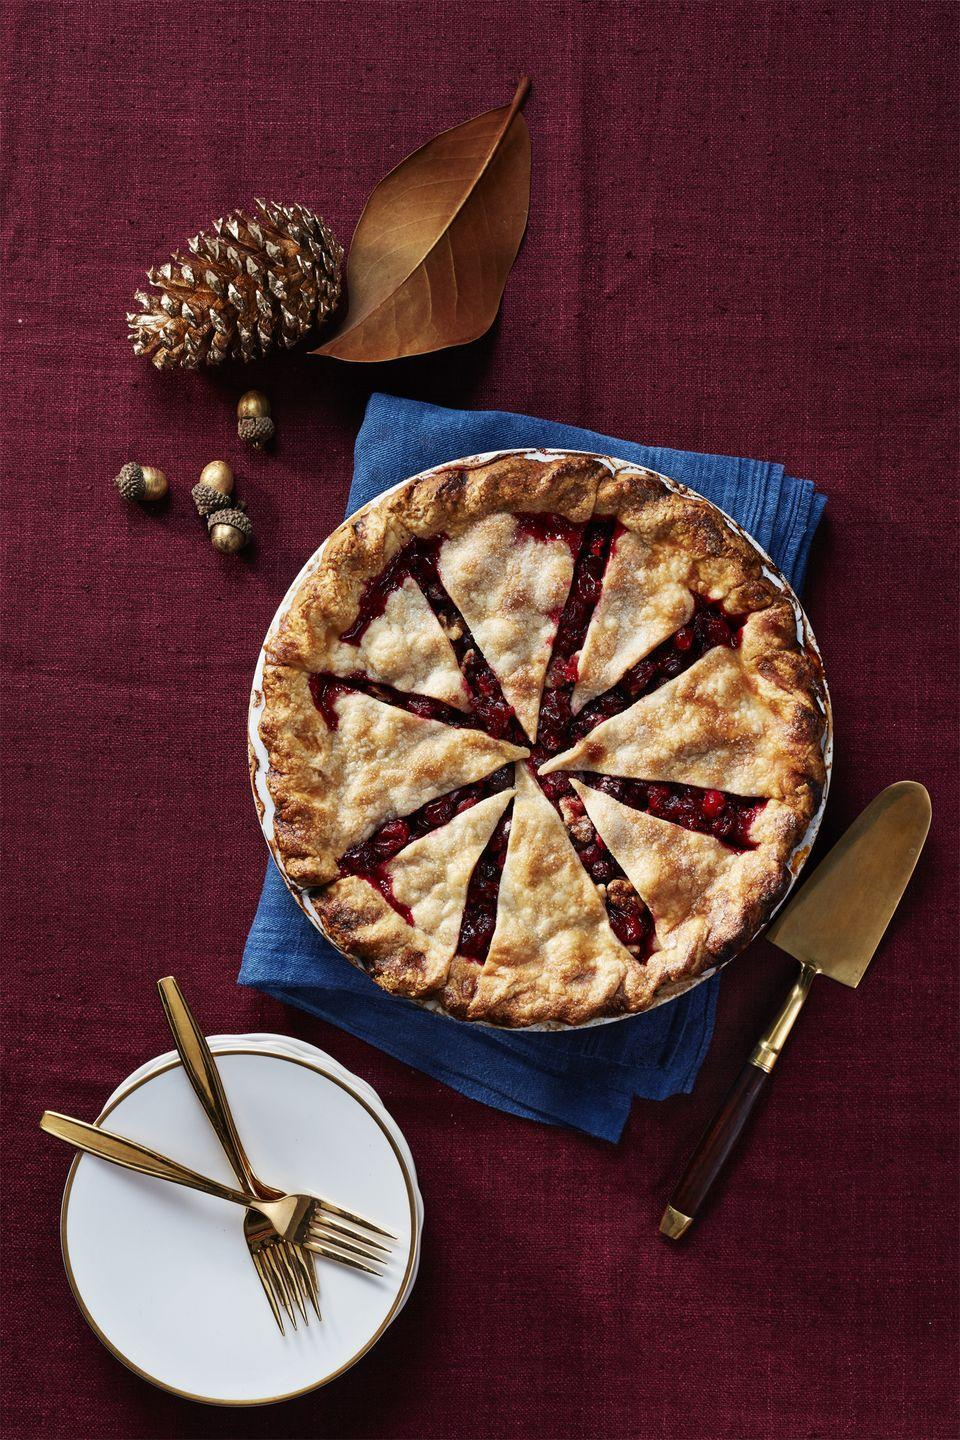 "<p>A tart and festive recipe that's welcome at any dessert table.<a href=""https://www.womansday.com/food-recipes/food-drinks/recipes/a56479/cranberry-pie-recipe/"" rel=""nofollow noopener"" target=""_blank"" data-ylk=""slk:"" class=""link rapid-noclick-resp""><br></a></p><p><a href=""https://www.womansday.com/food-recipes/food-drinks/recipes/a56479/cranberry-pie-recipe/"" rel=""nofollow noopener"" target=""_blank"" data-ylk=""slk:Get the Cranberry Pie recipe."" class=""link rapid-noclick-resp""><strong><em>Get the Cranberry Pie recipe. </em></strong></a></p><p><strong>What You'll Need:</strong> <a href=""https://www.amazon.com/Talisman-Designs-Pastry-Decorator-Beautiful/dp/B01DEY8KVO/"" rel=""nofollow noopener"" target=""_blank"" data-ylk=""slk:Pastry Wheel Decorator"" class=""link rapid-noclick-resp"">Pastry Wheel Decorator</a> ($11, Amazon)</p>"